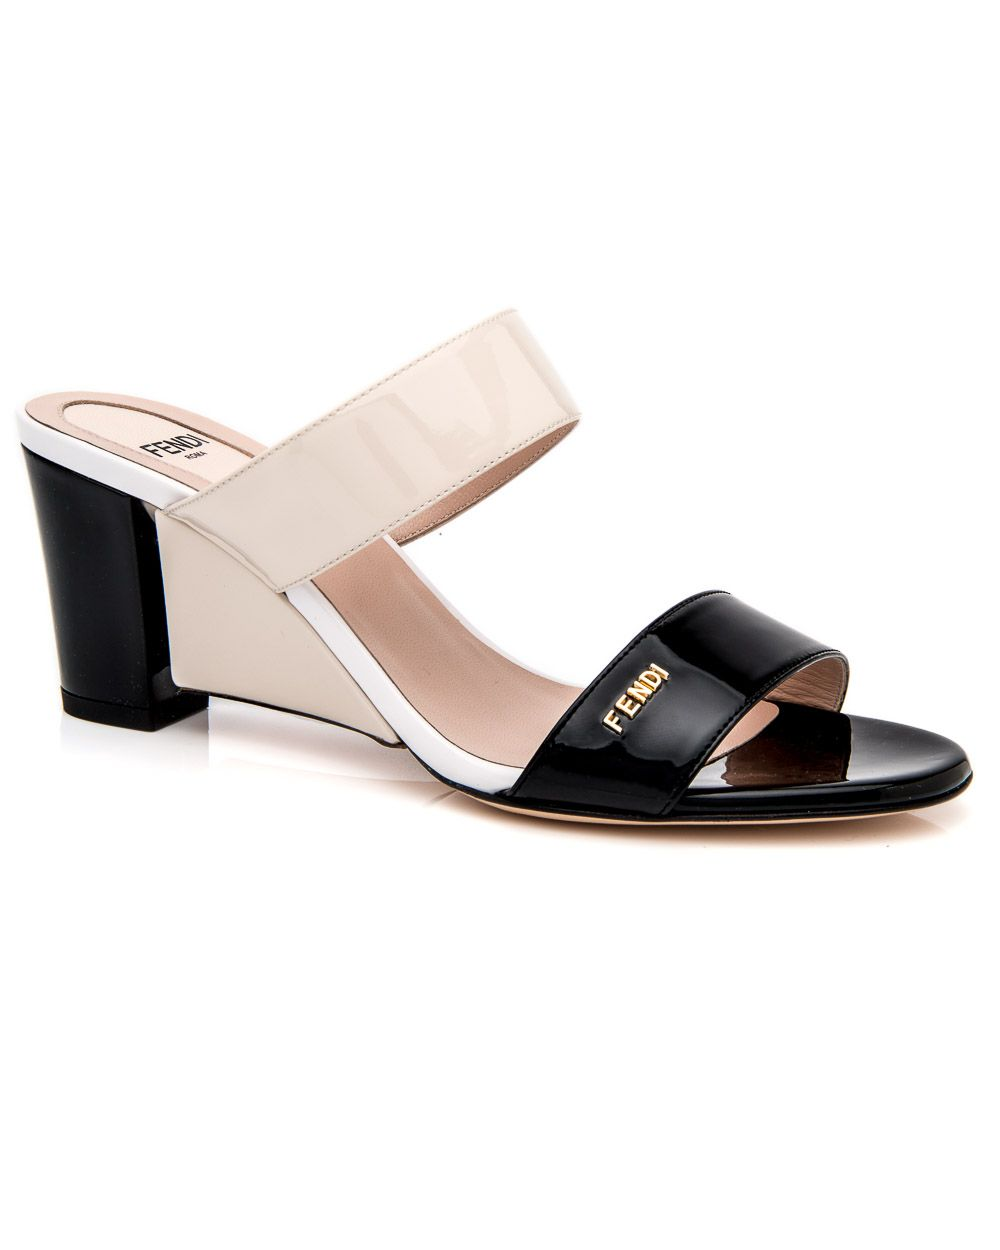 5634dd0d531fd9 Fendi Black and Milk with White Patent Sandal Patent leather upper Tonal  stitching Double strap slip-on sandal Leather lining